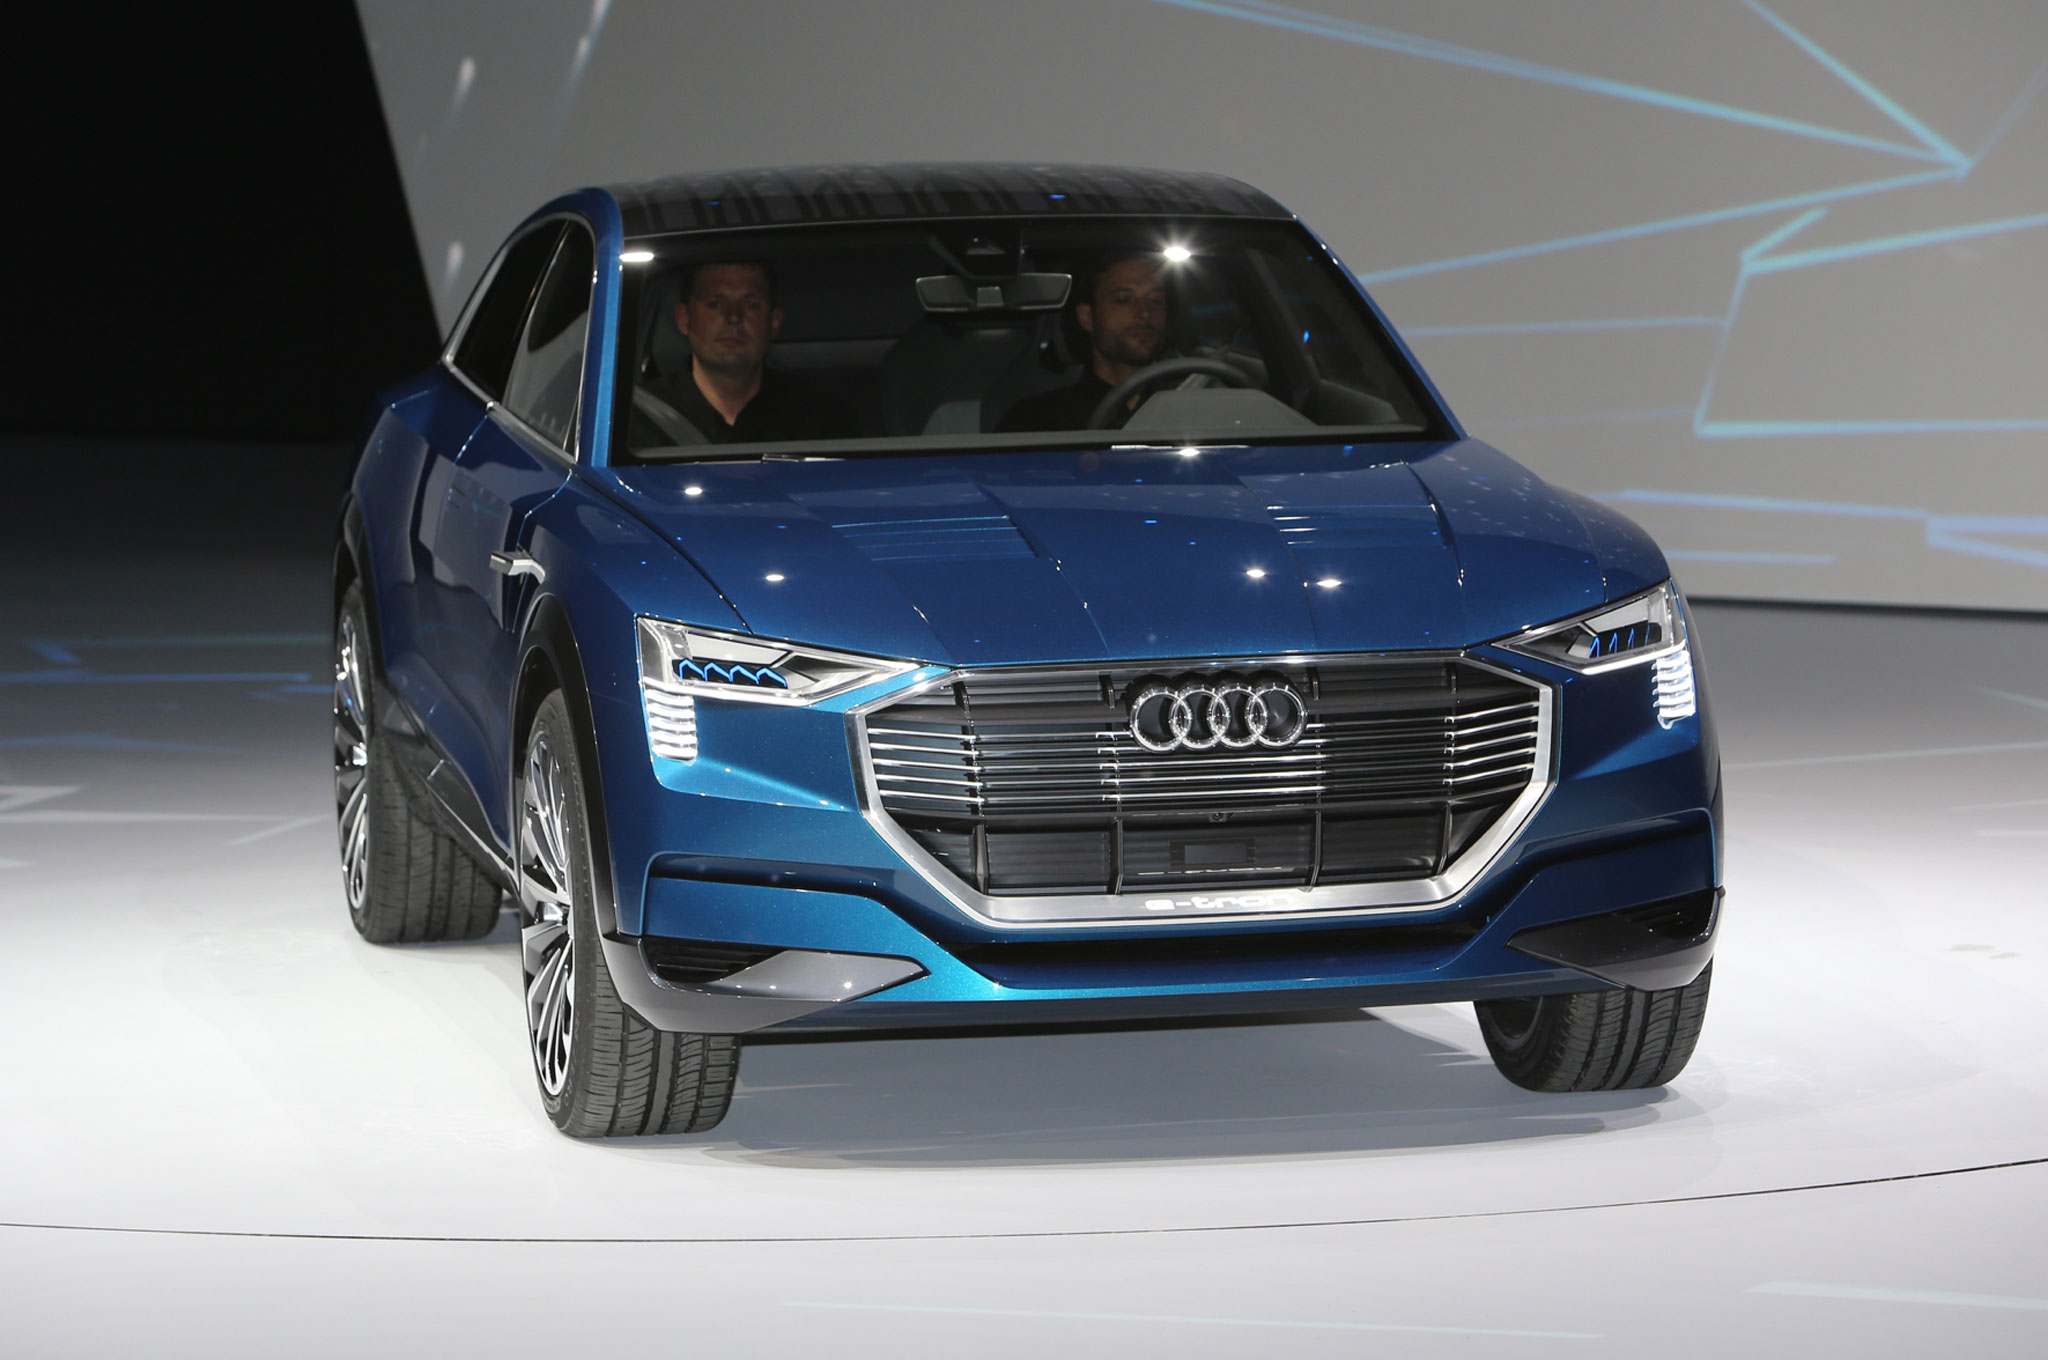 All Electric Audi Q6 E Tron Coming In 2018 With 300 Miles Of Range